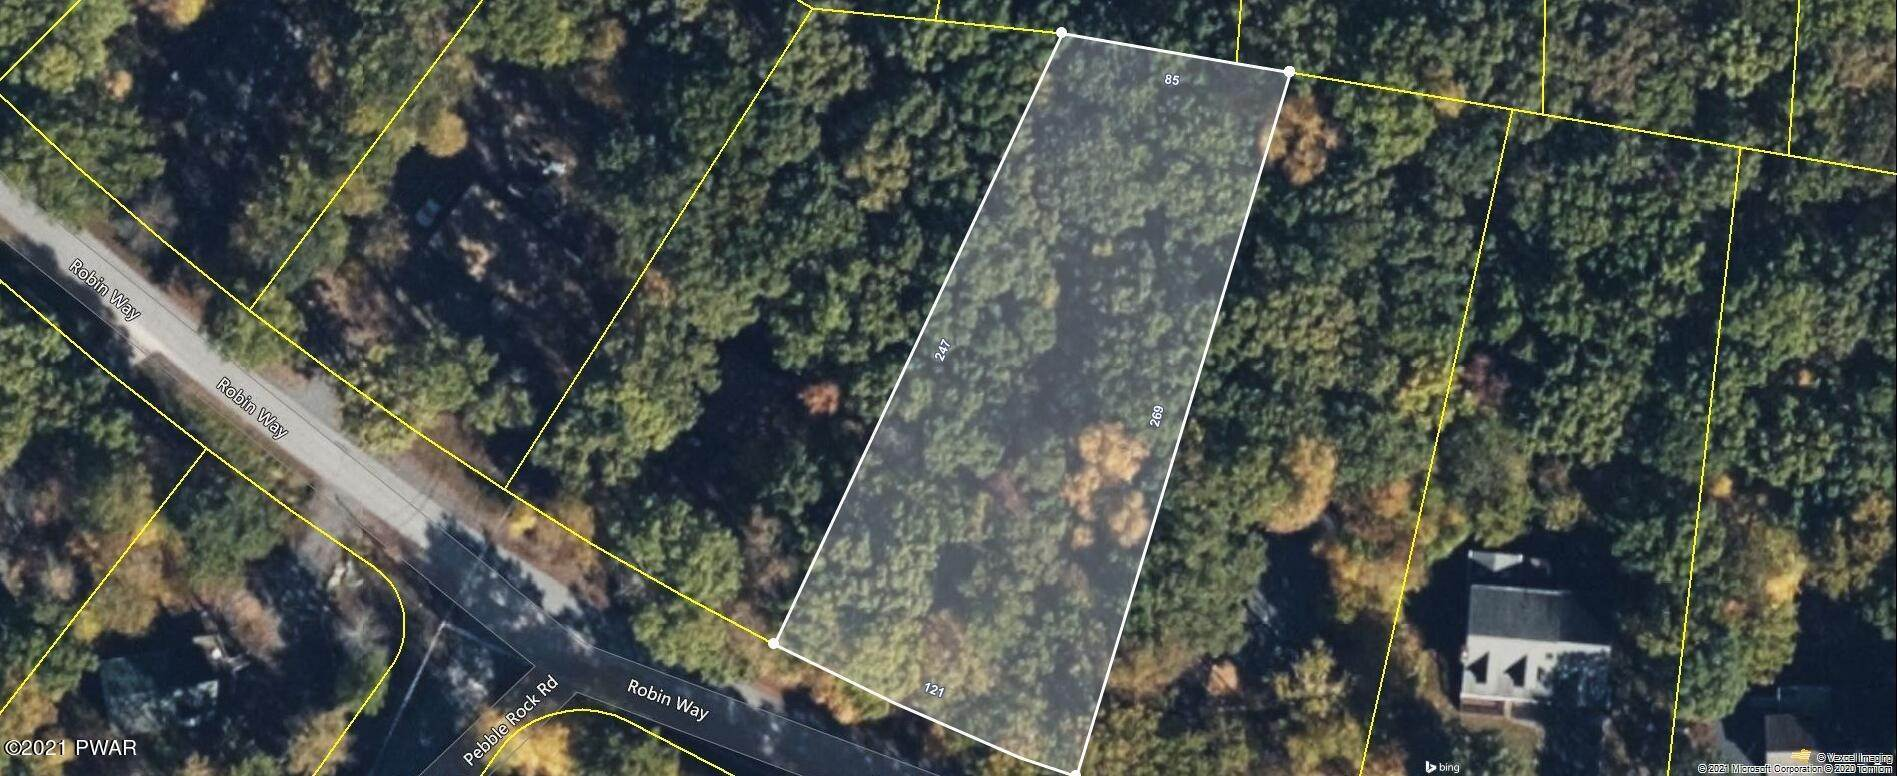 Property for Sale at 112 Robin Way Lackawaxen, Pennsylvania 18435 United States